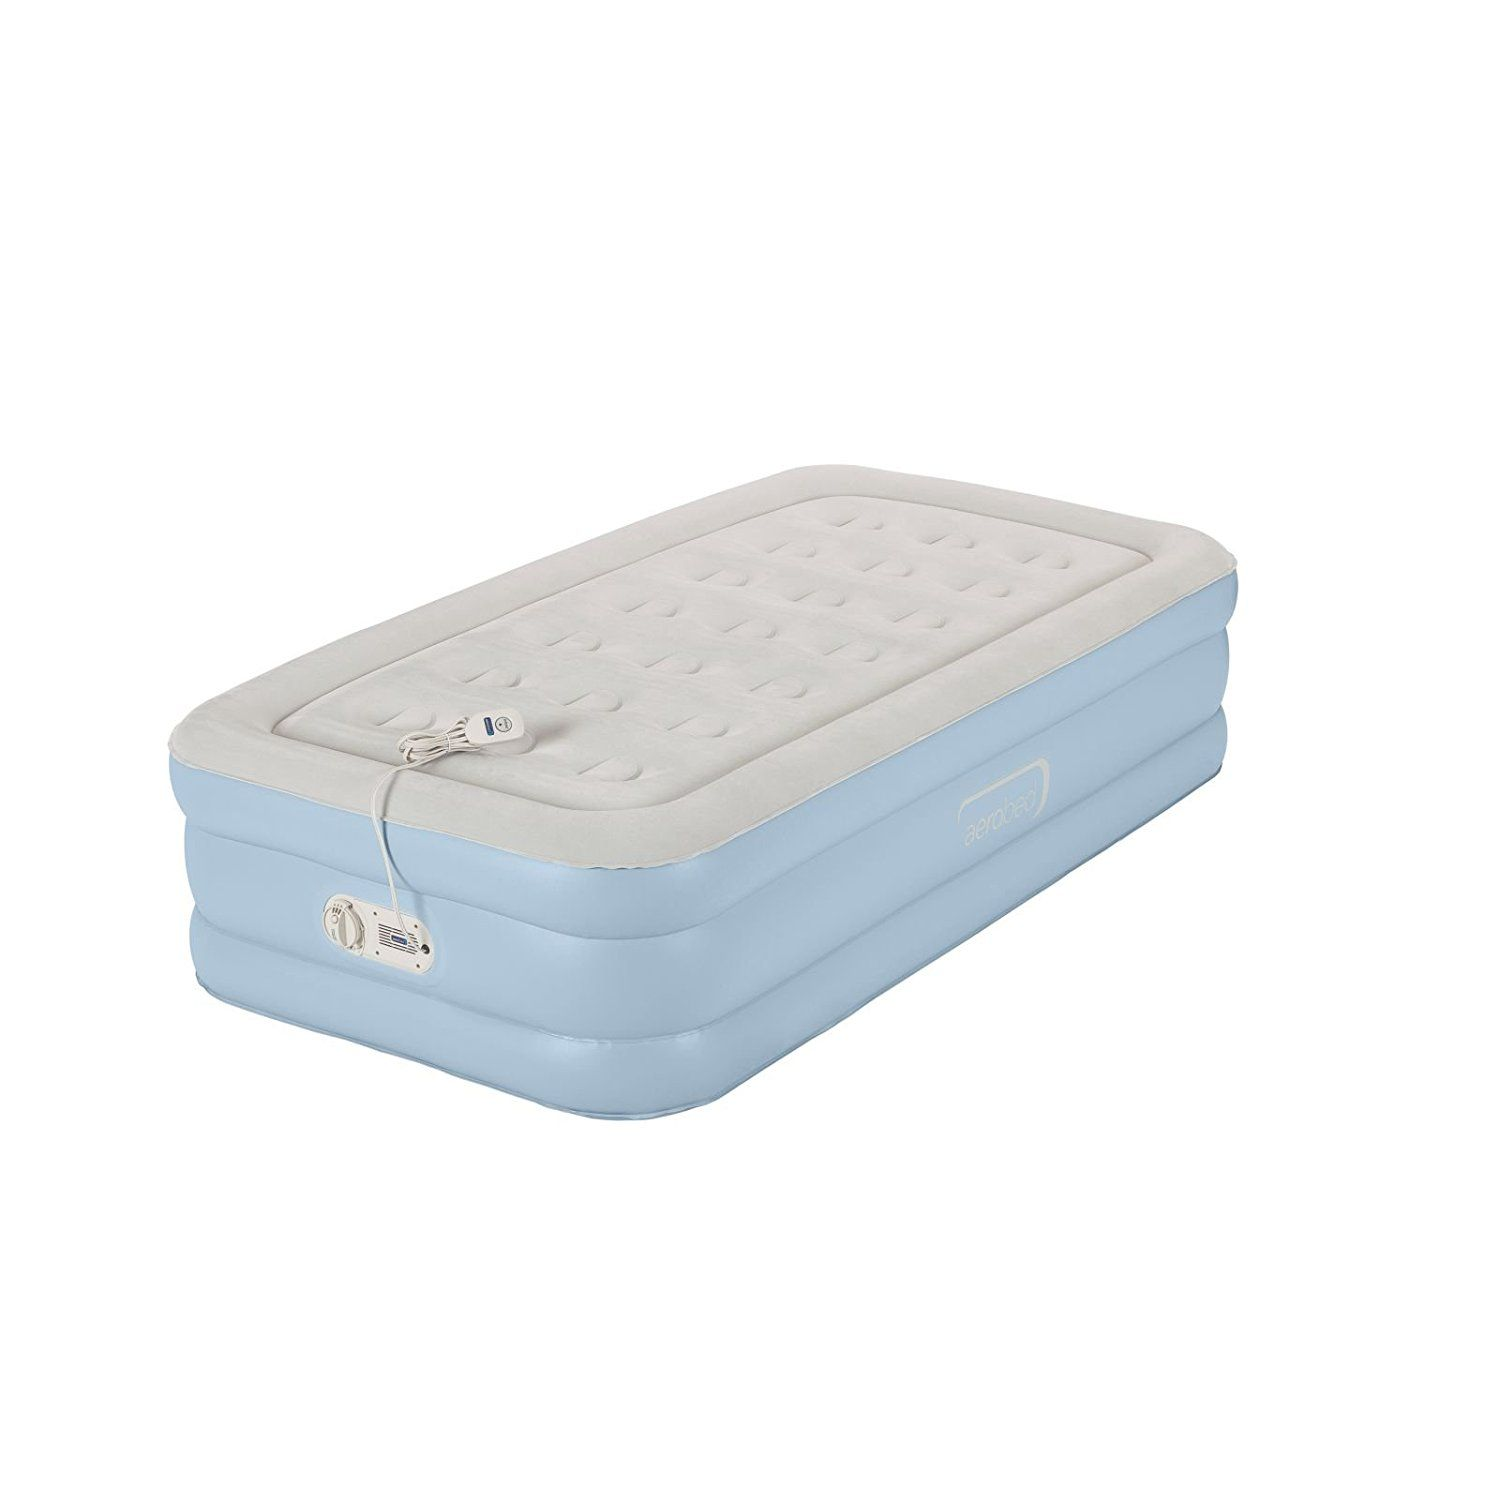 Camping Air Mattresses Aerobed Onetouch Comfort Mattress Twin Check Out This Great Product